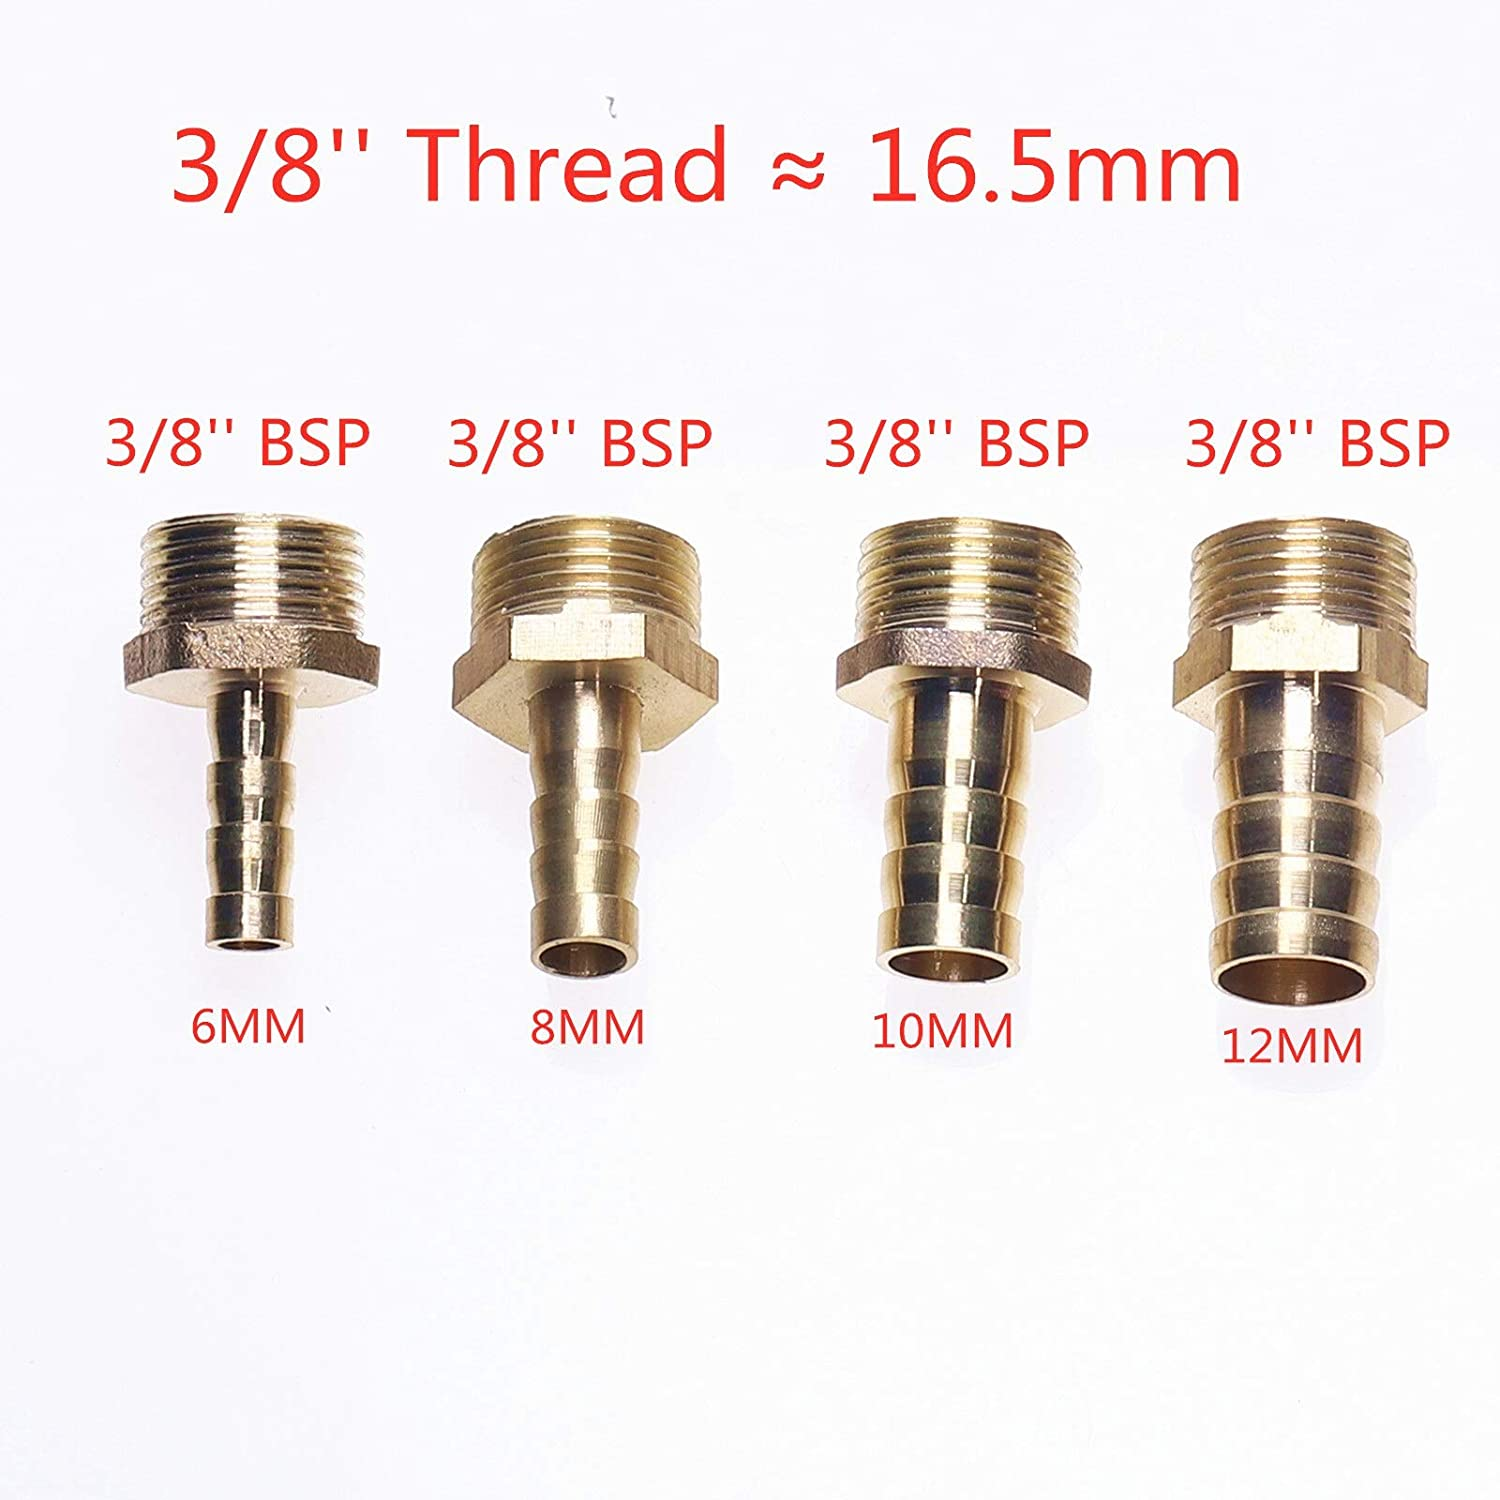 1//4 NOLOGO YOCO 4mm-12mm Brass Pipe Fitting Hose Barb Tail 1//8 Size : 8mm Bard, Thread Specification : 3//8 3//8 1//2 BSP Male Connector Joint Copper Pipe Coupler Adapter Gas Joint